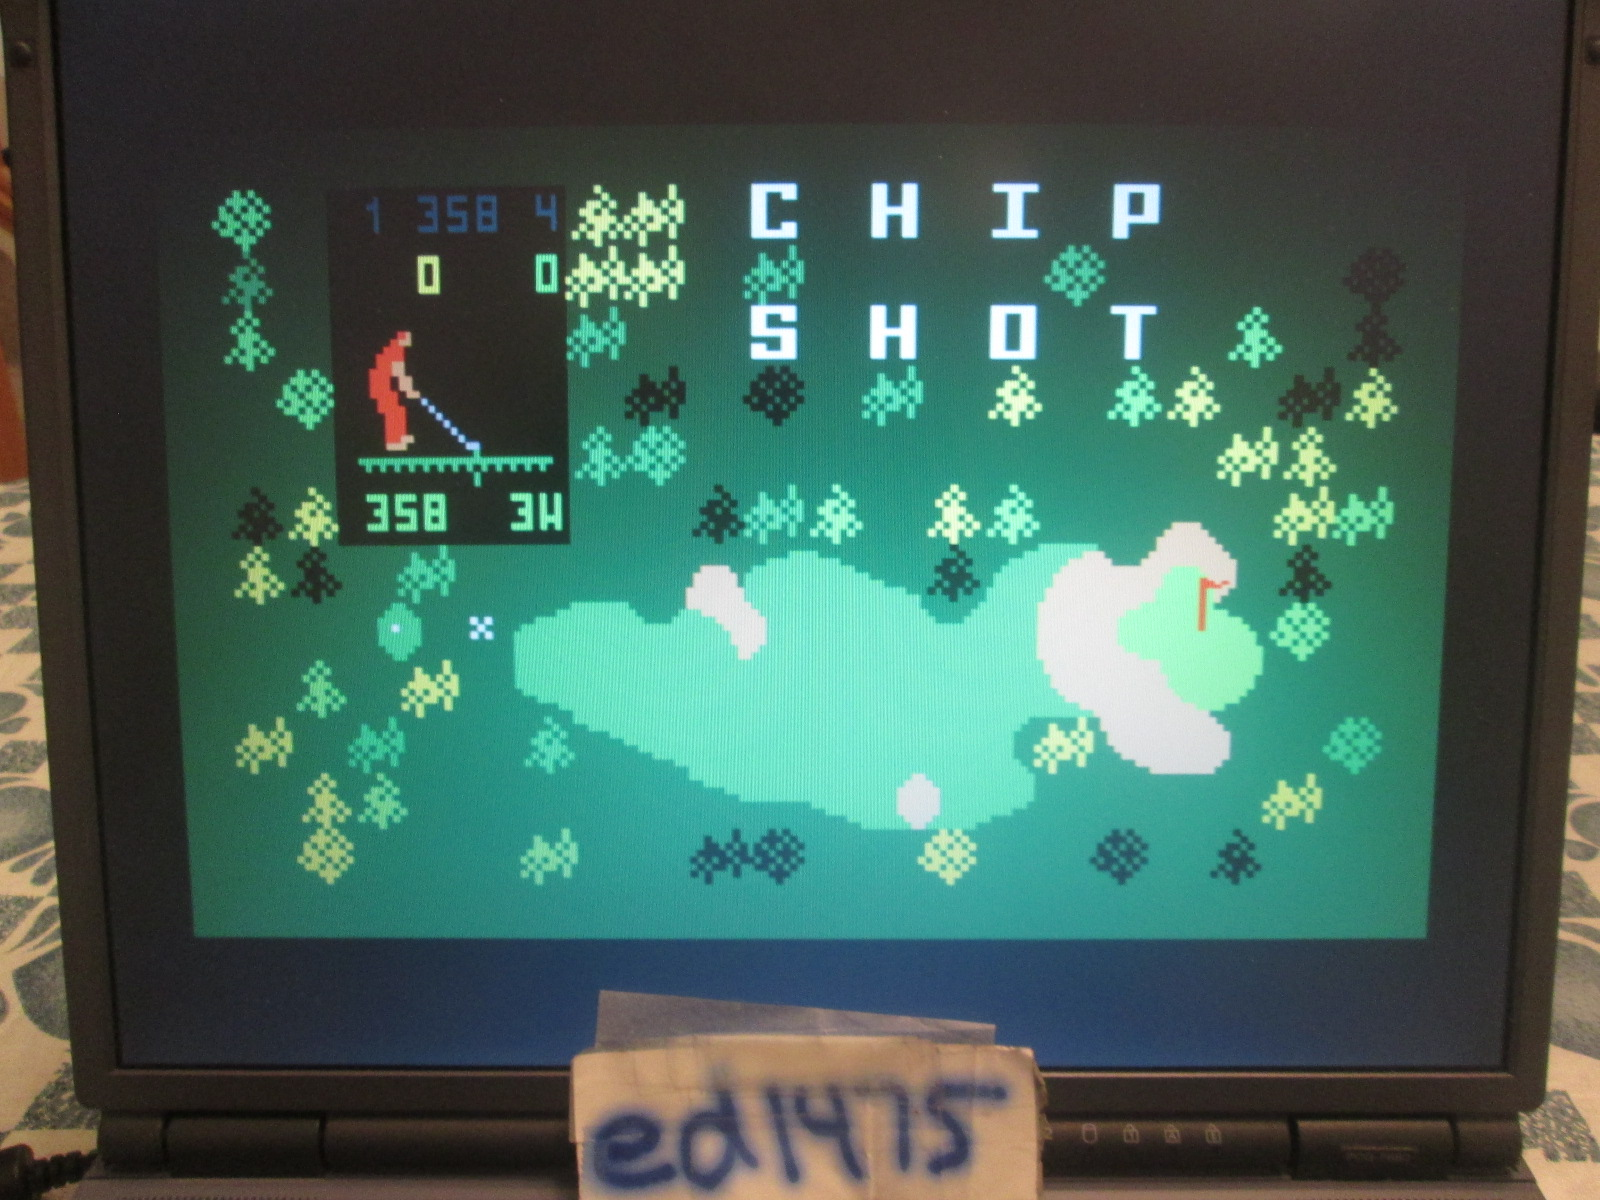 ed1475: Chip Shot: Super Pro Golf [Classic Course: 18 Holes] (Intellivision Emulated) 98 points on 2018-10-17 22:41:06